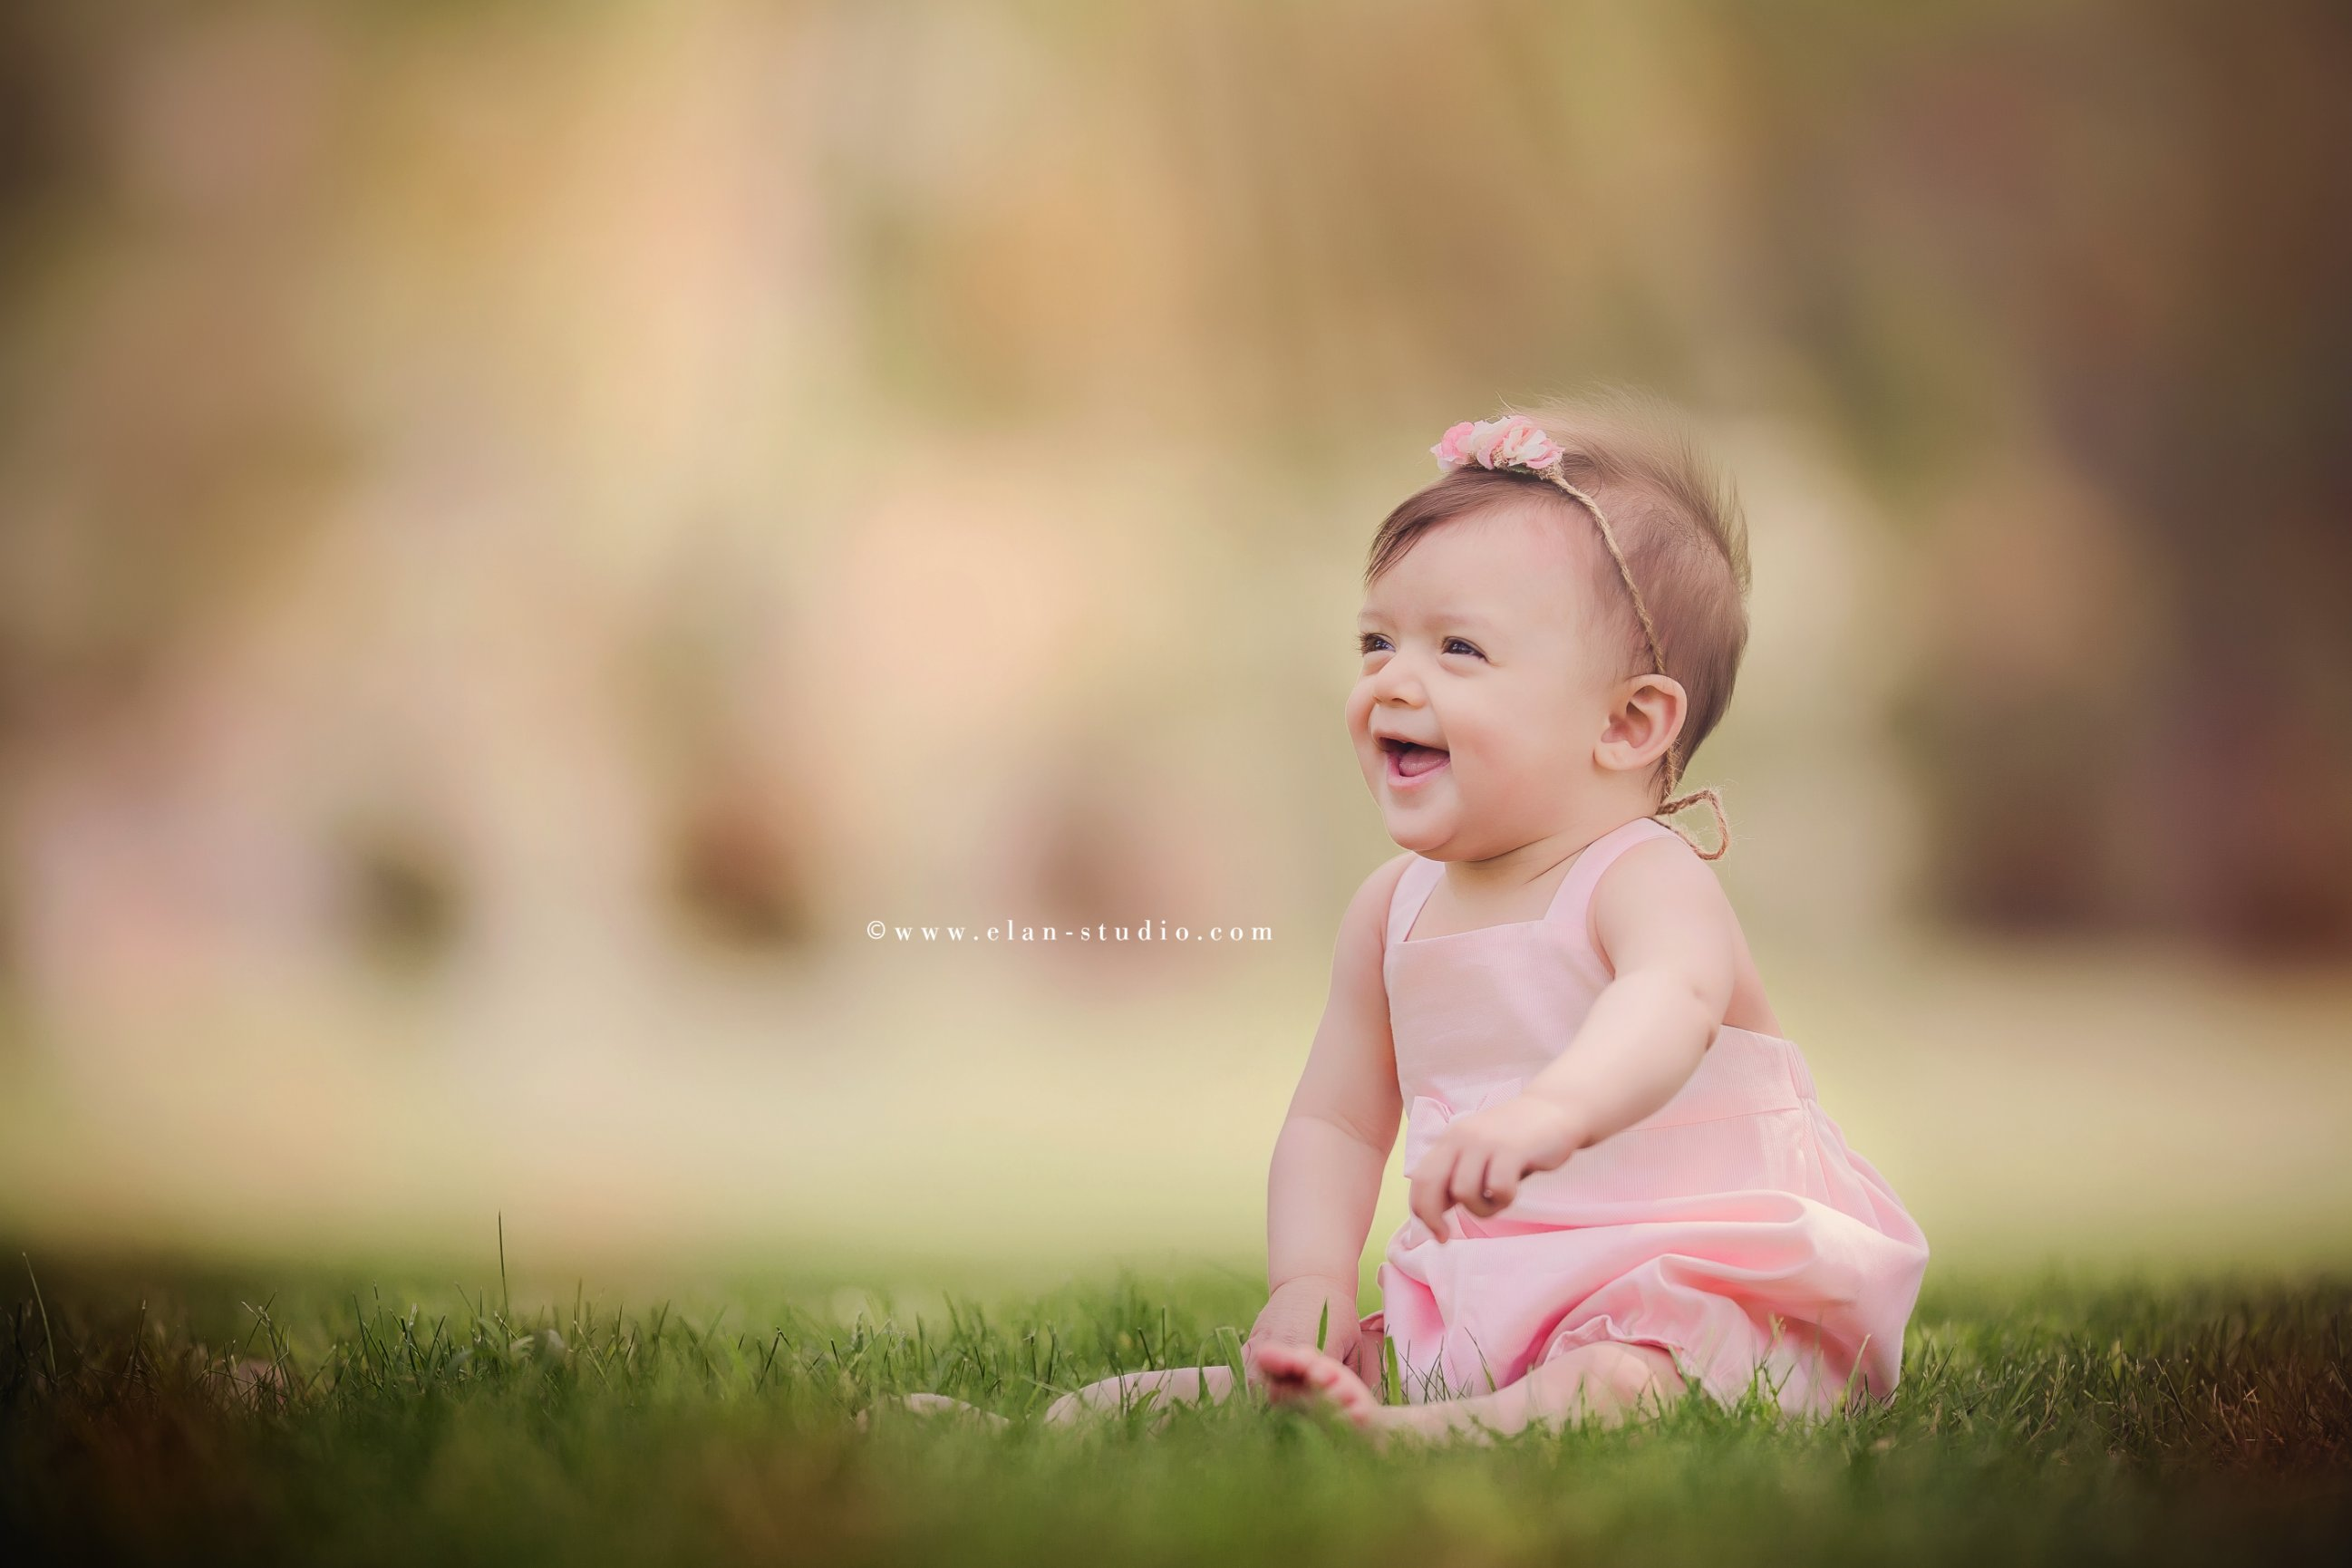 smiling sitting baby girl with a pink romper, green grass, background bokeh, Tracy Sweeney